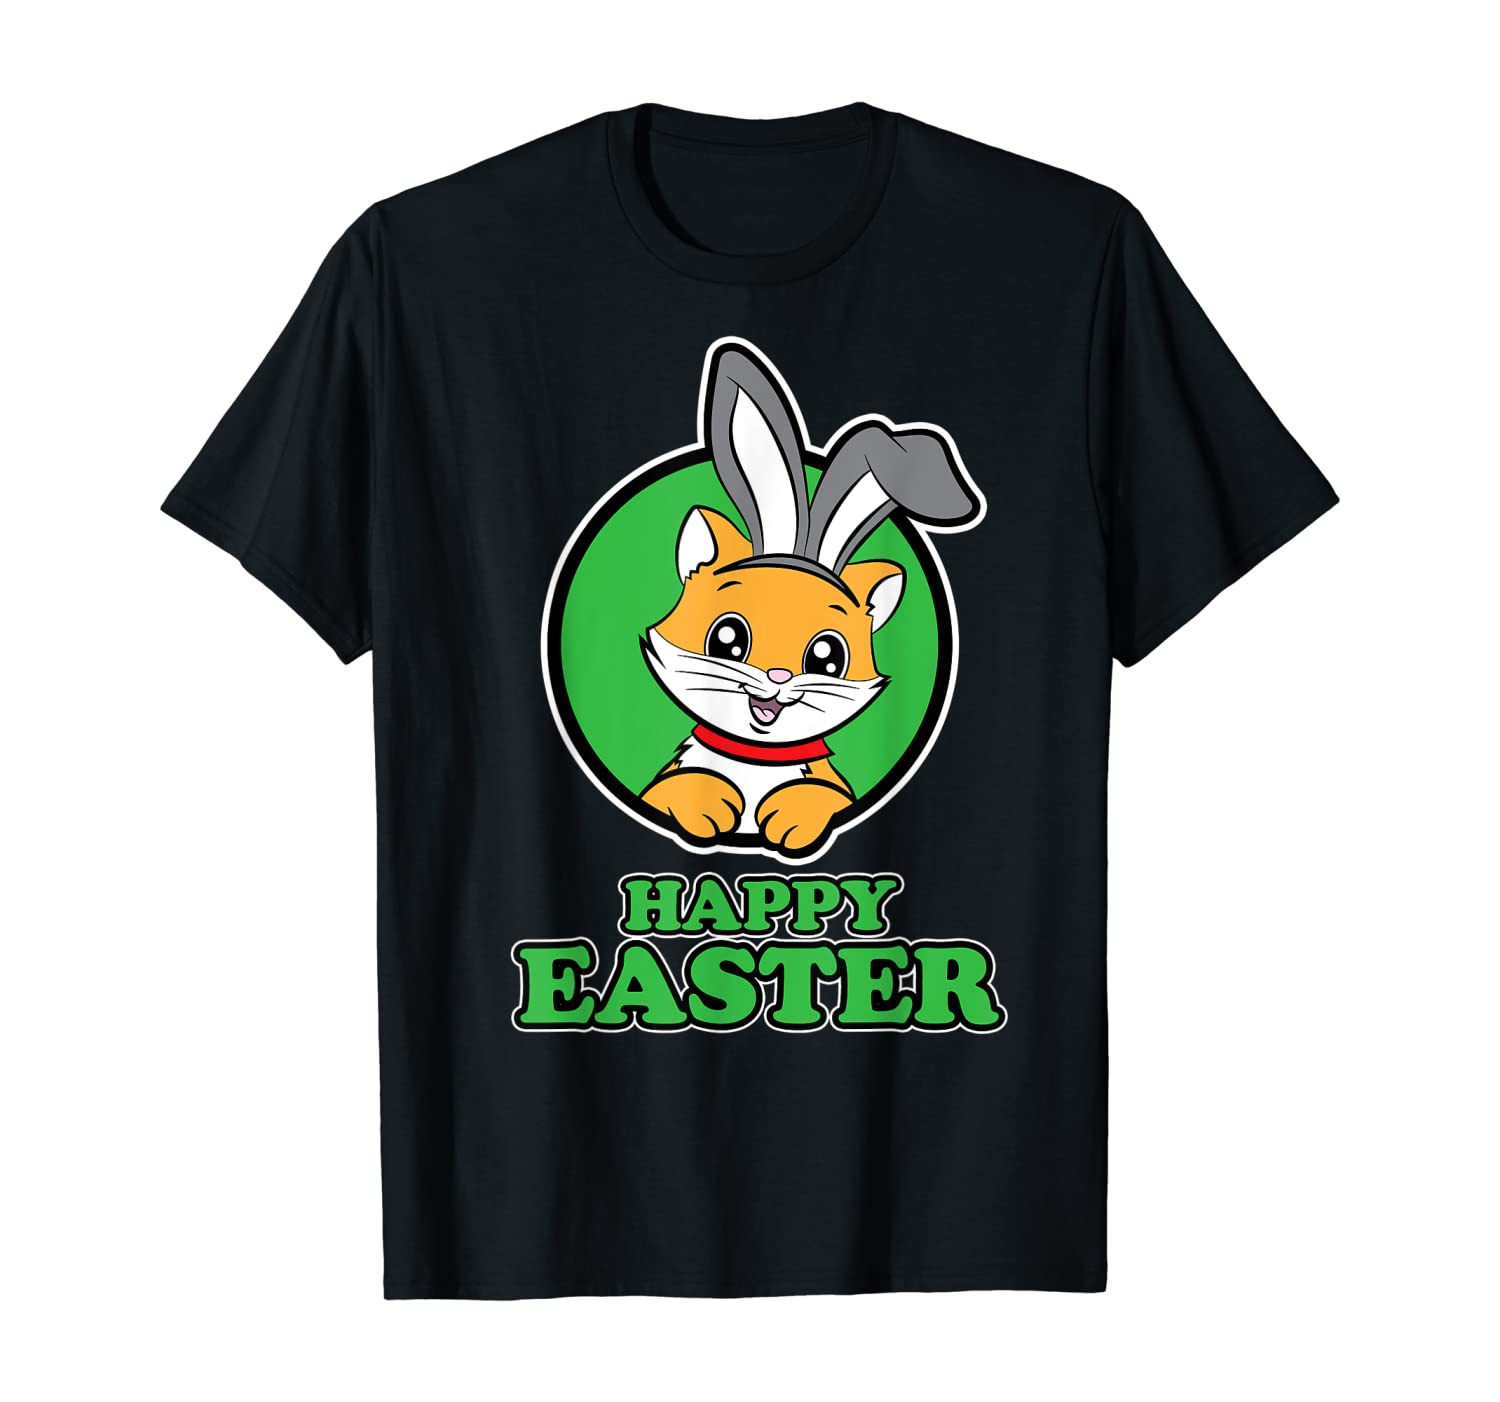 Cat Shirt for Men and Women for Easter - Happy Easter T-Shirt